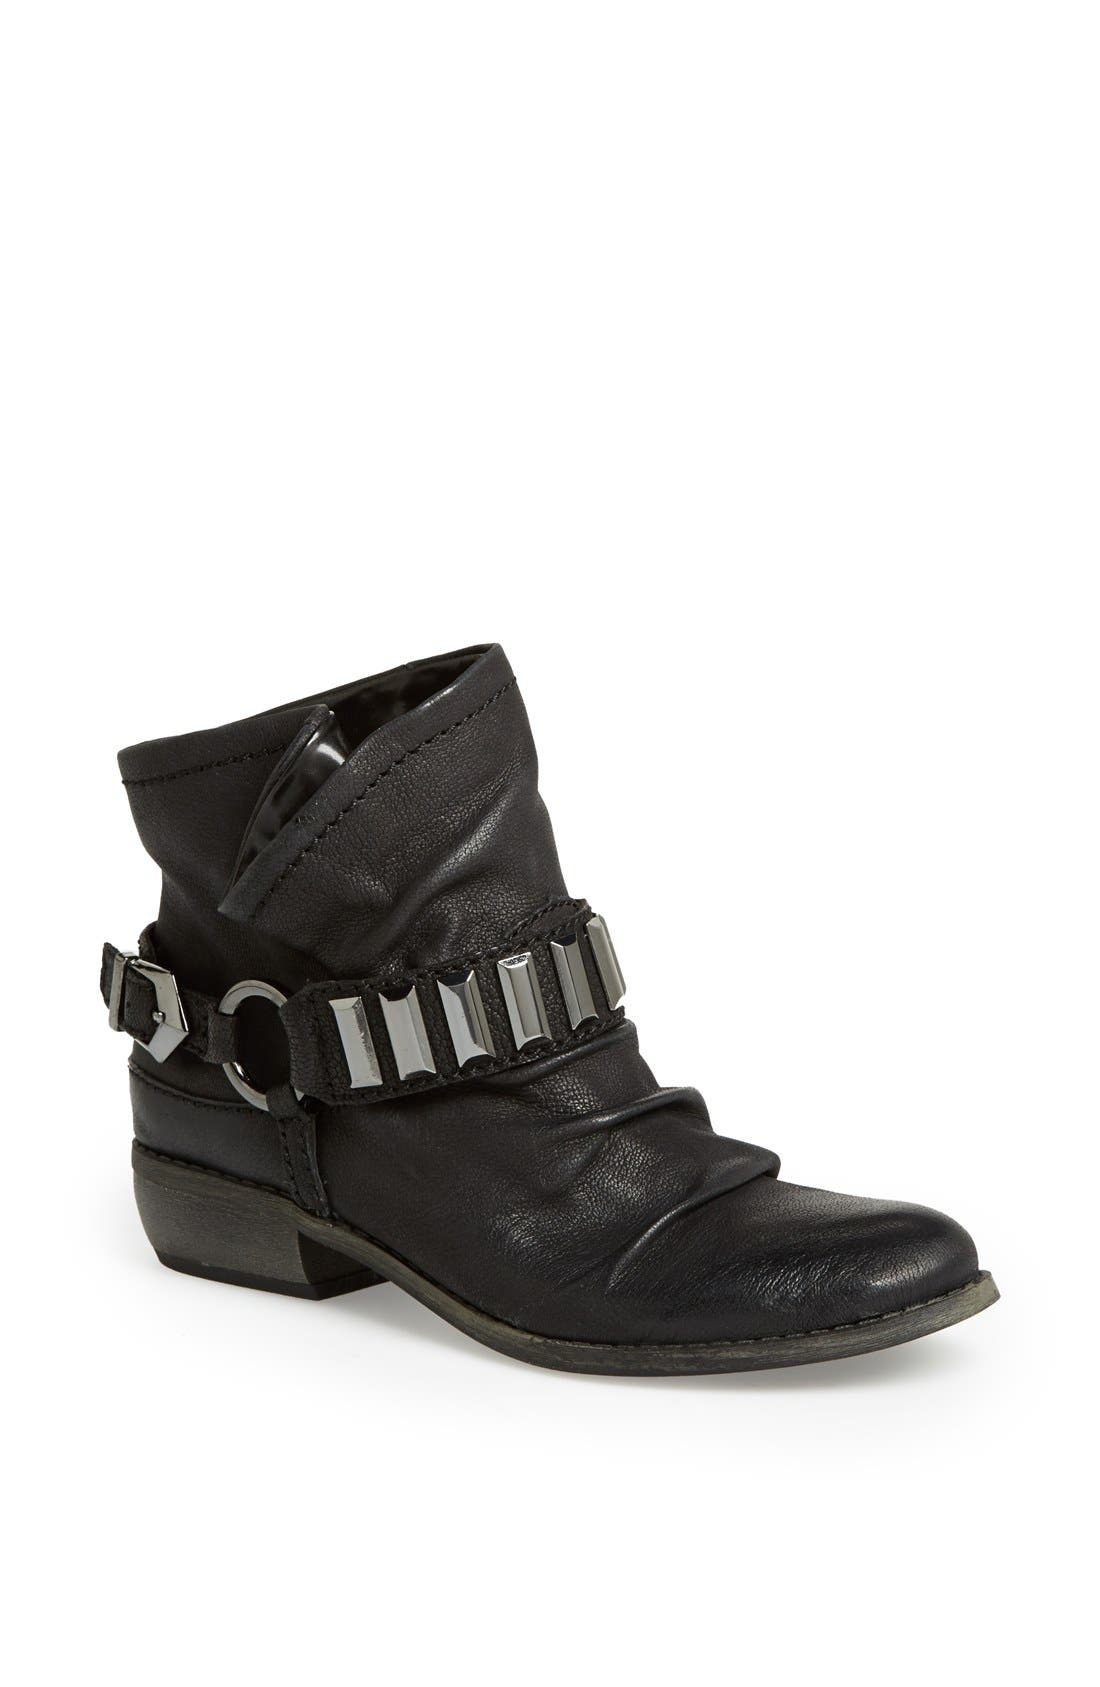 Alternate Image 1 Selected - Fergie 'Margo' Belted Bootie